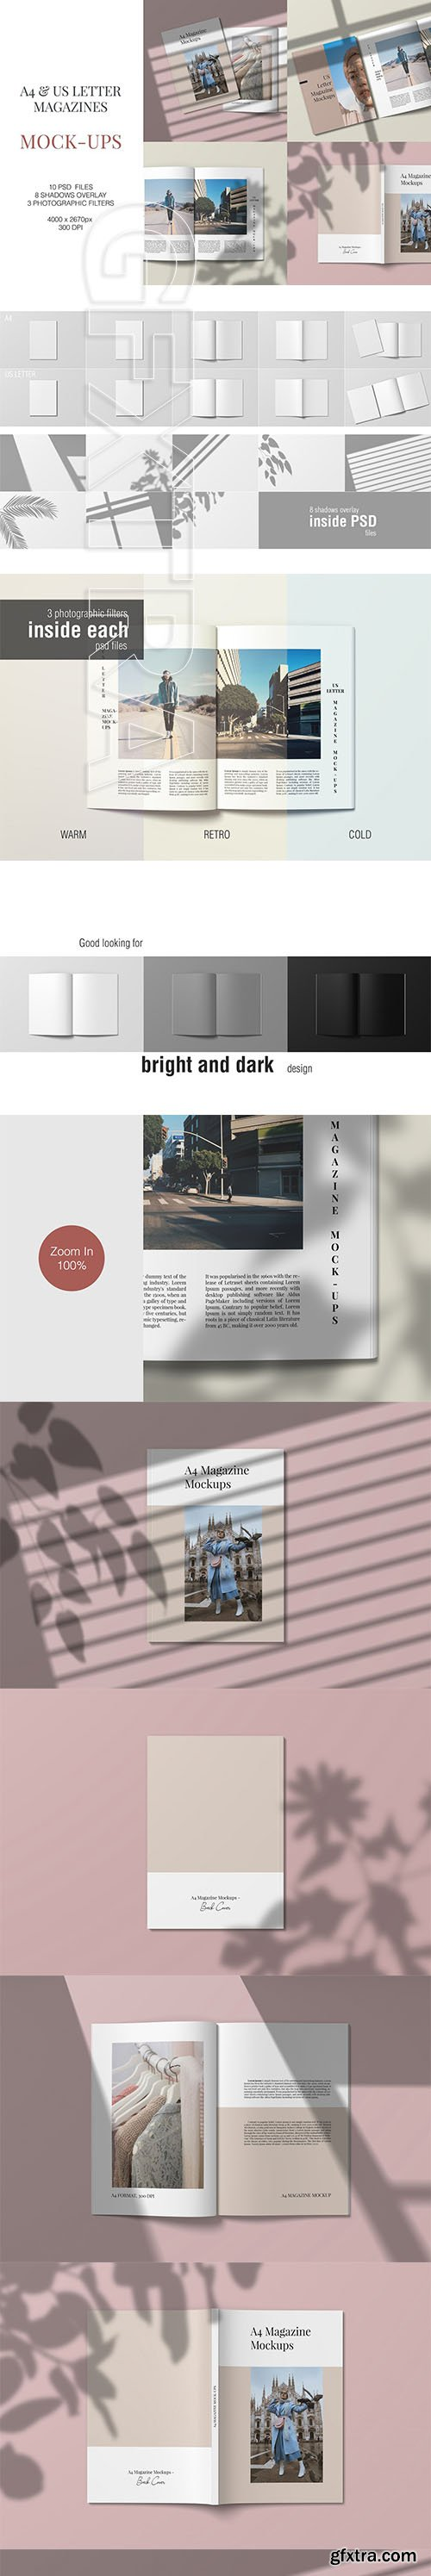 CreativeMarket - A4 and US Letter Magazine Mockups 3710369